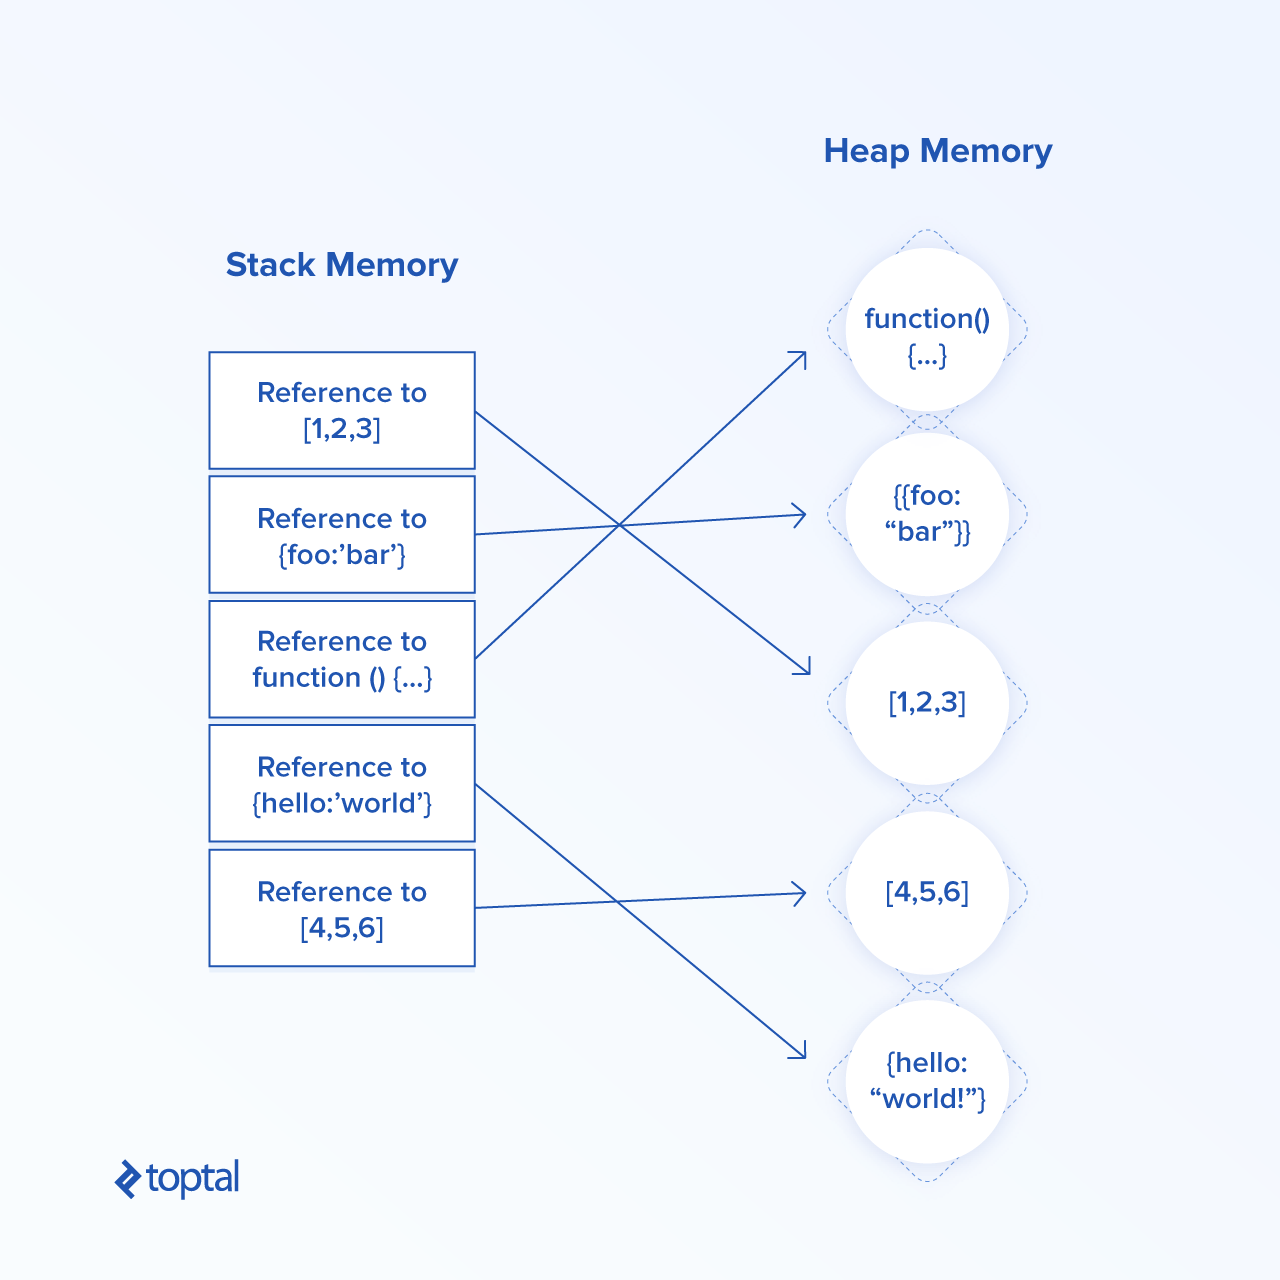 Angular Stack Memory and Heap Memory